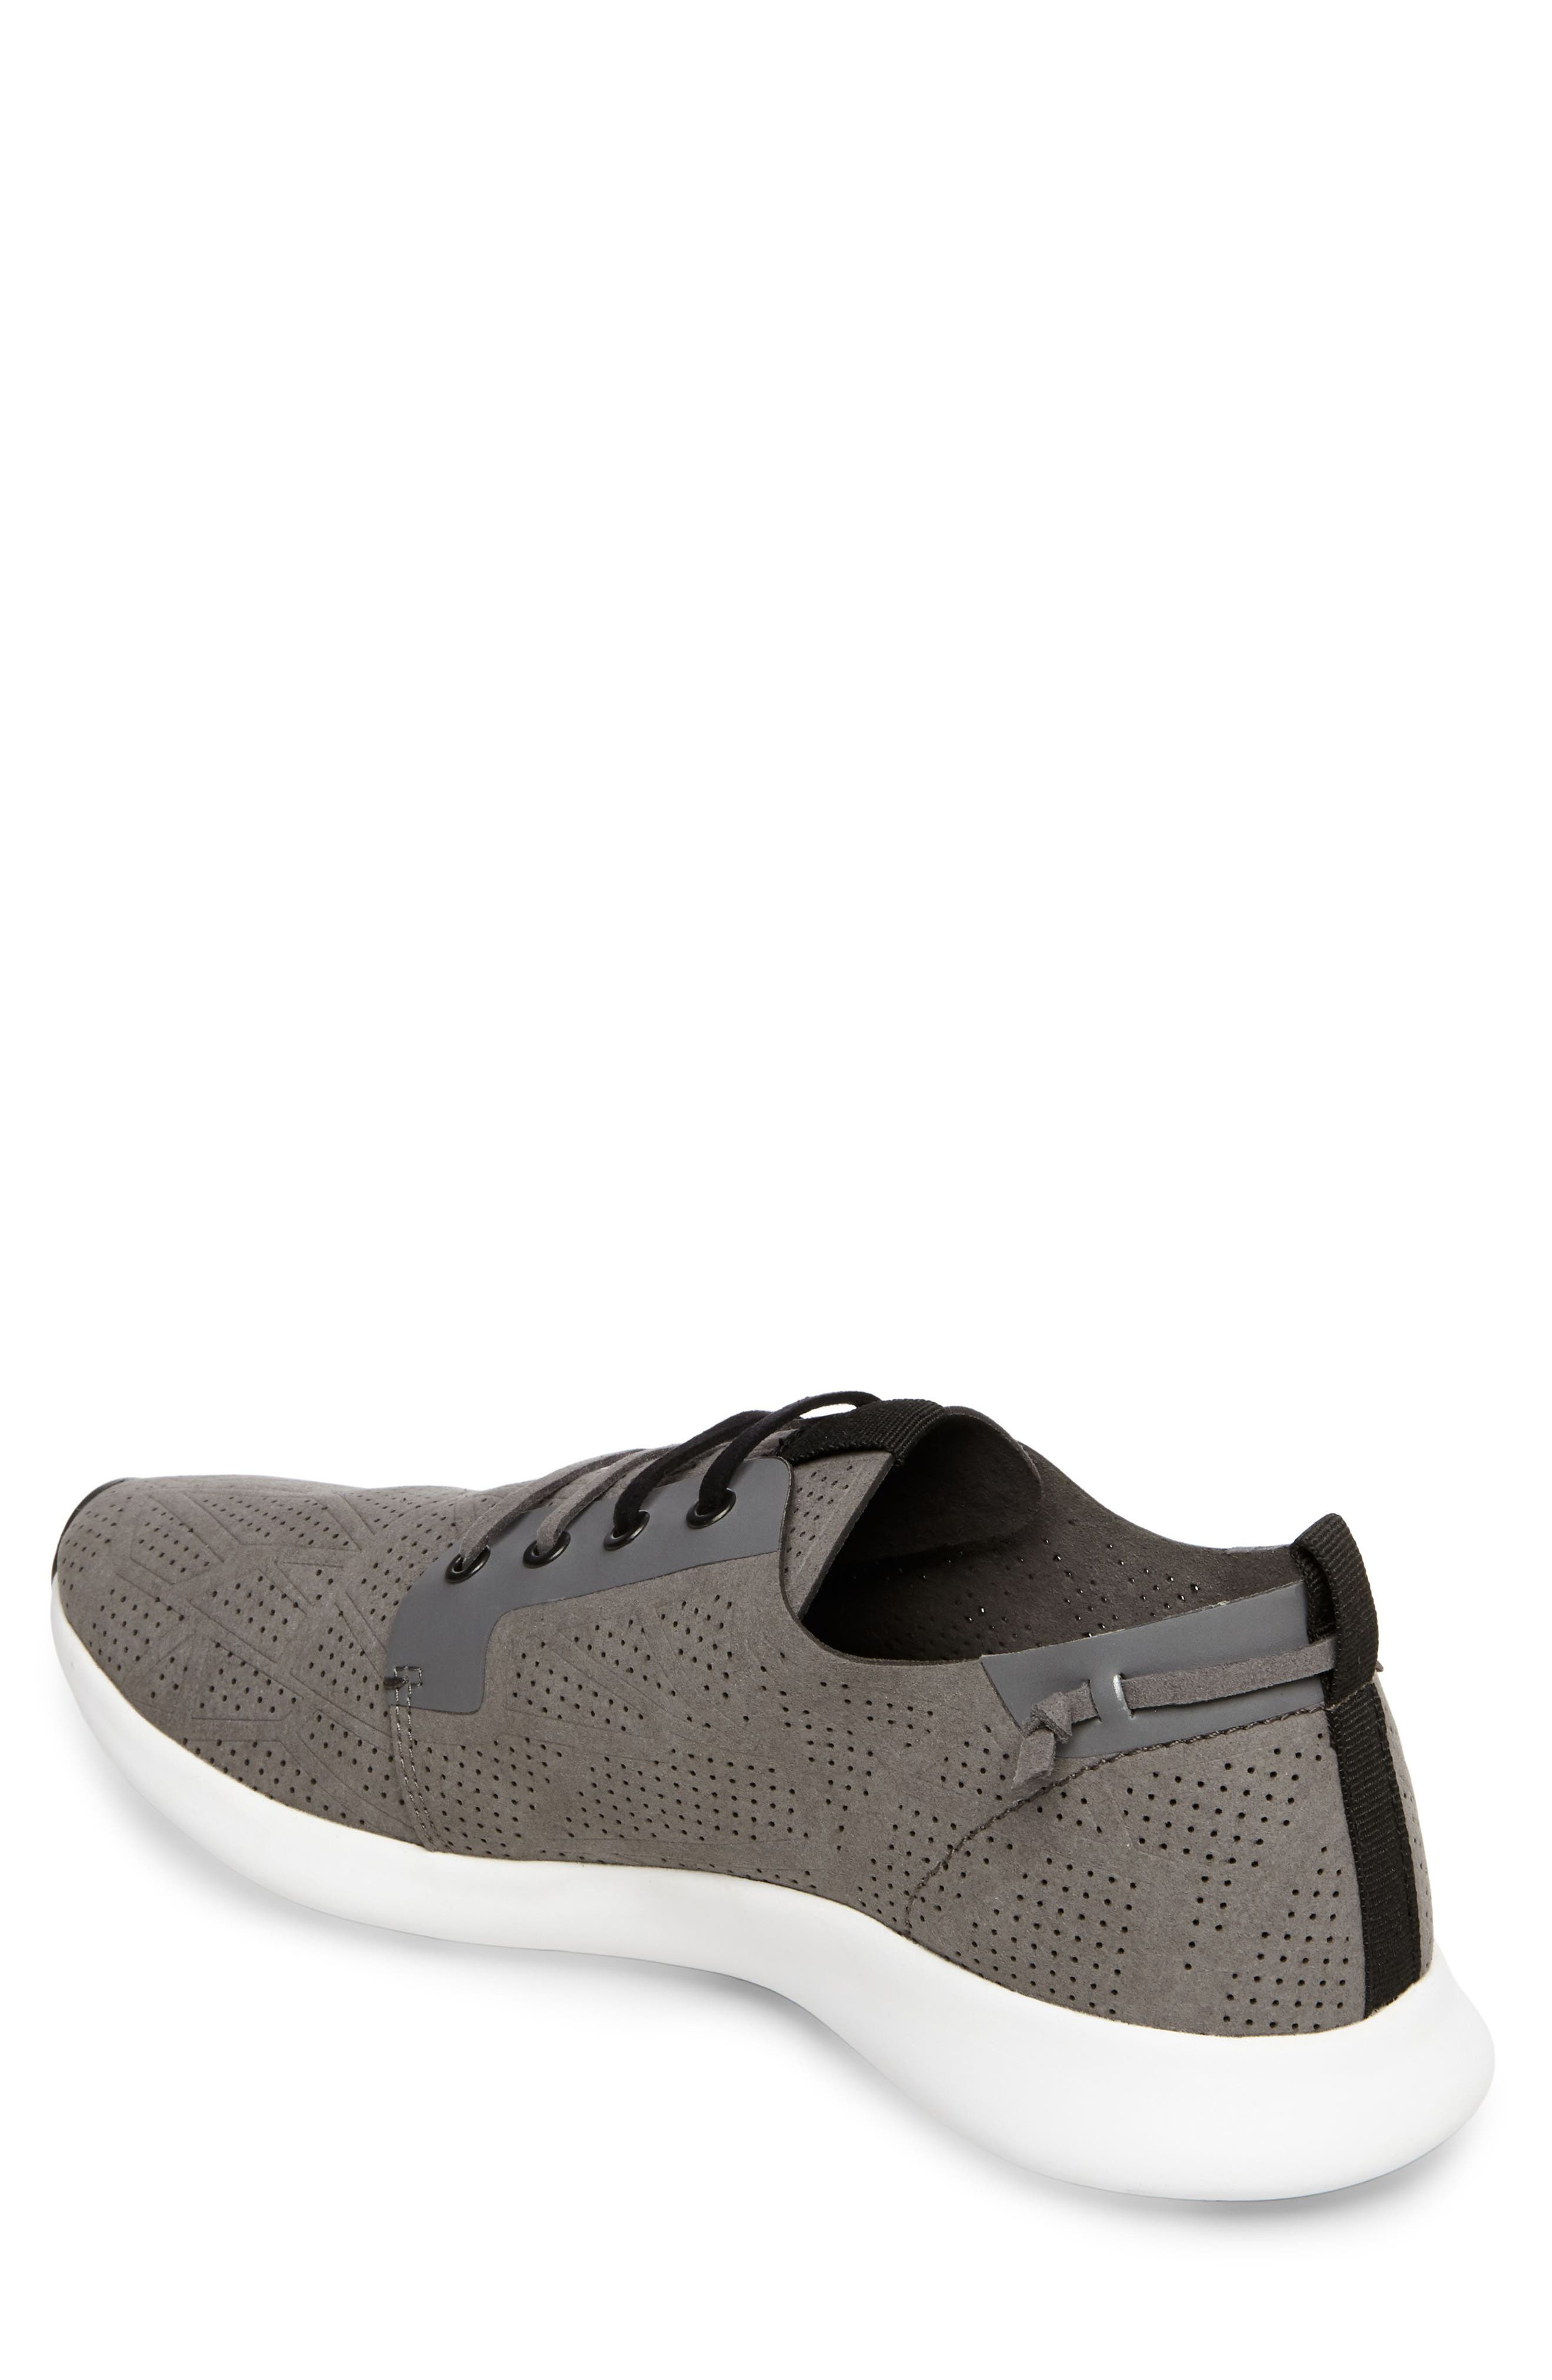 Batali Perforated Sneaker,                             Alternate thumbnail 2, color,                             Grey